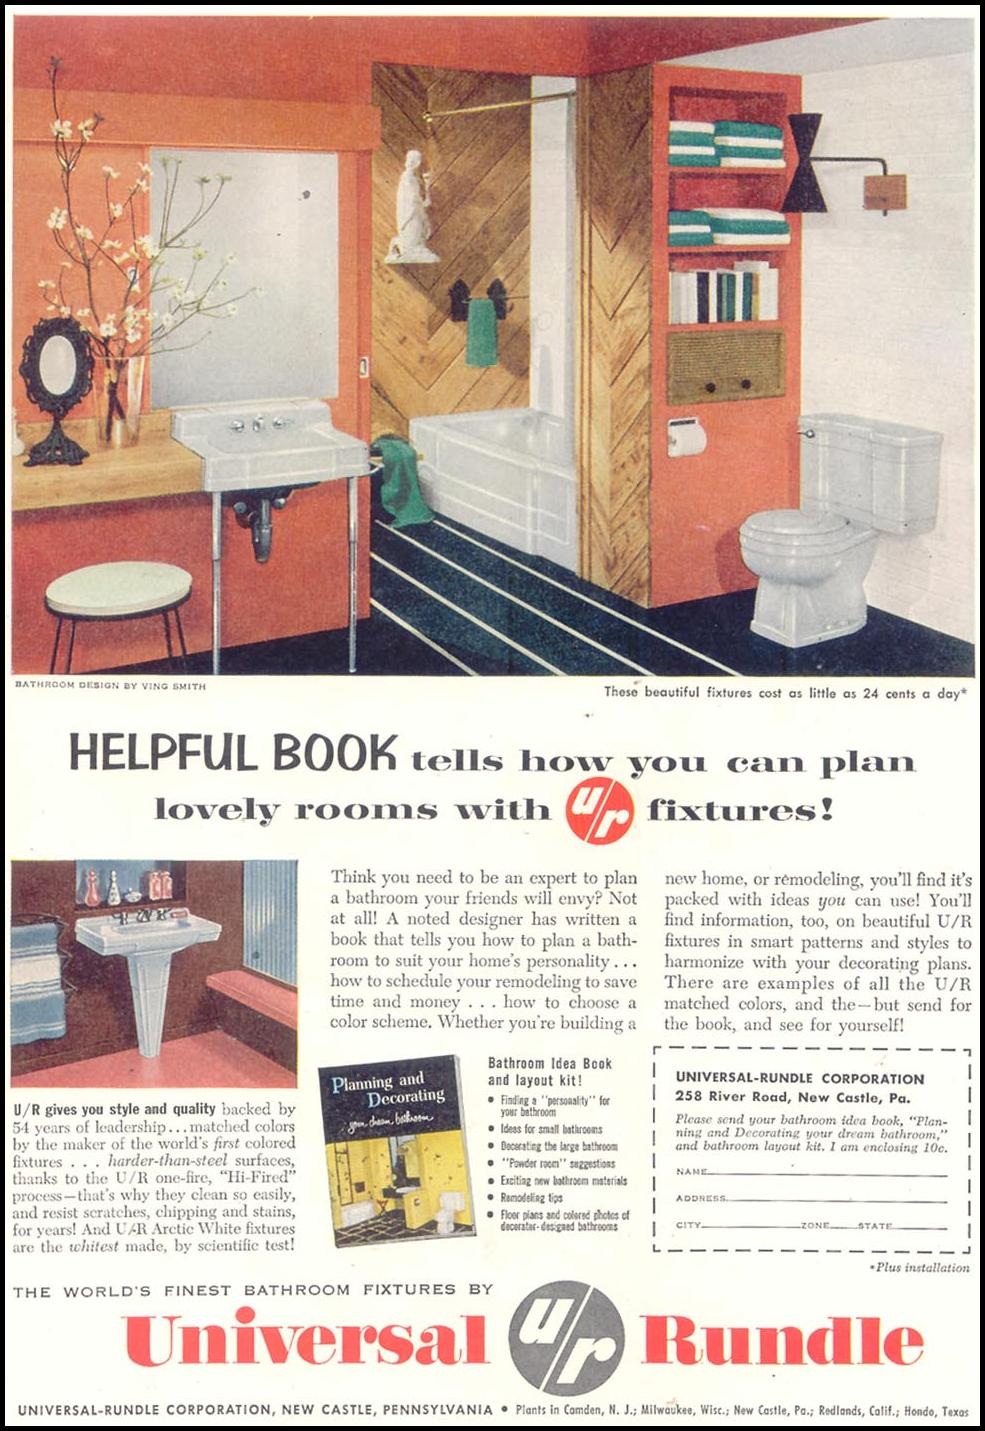 BATHROOM FIXTURES SATURDAY EVENING POST 02/05/1955 p. 87